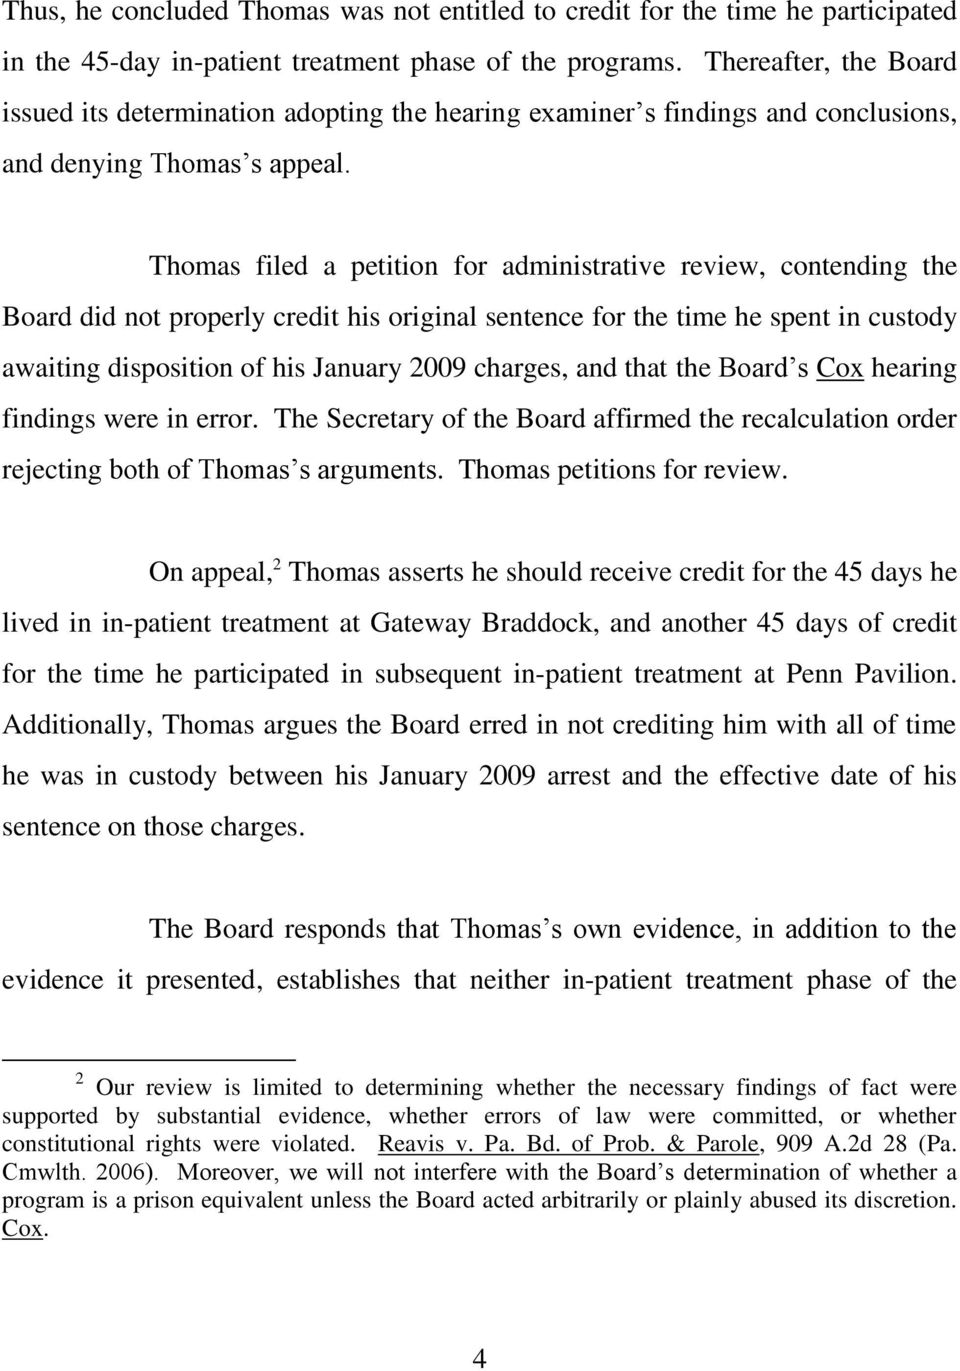 Thomas filed a petition for administrative review, contending the Board did not properly credit his original sentence for the time he spent in custody awaiting disposition of his January 2009